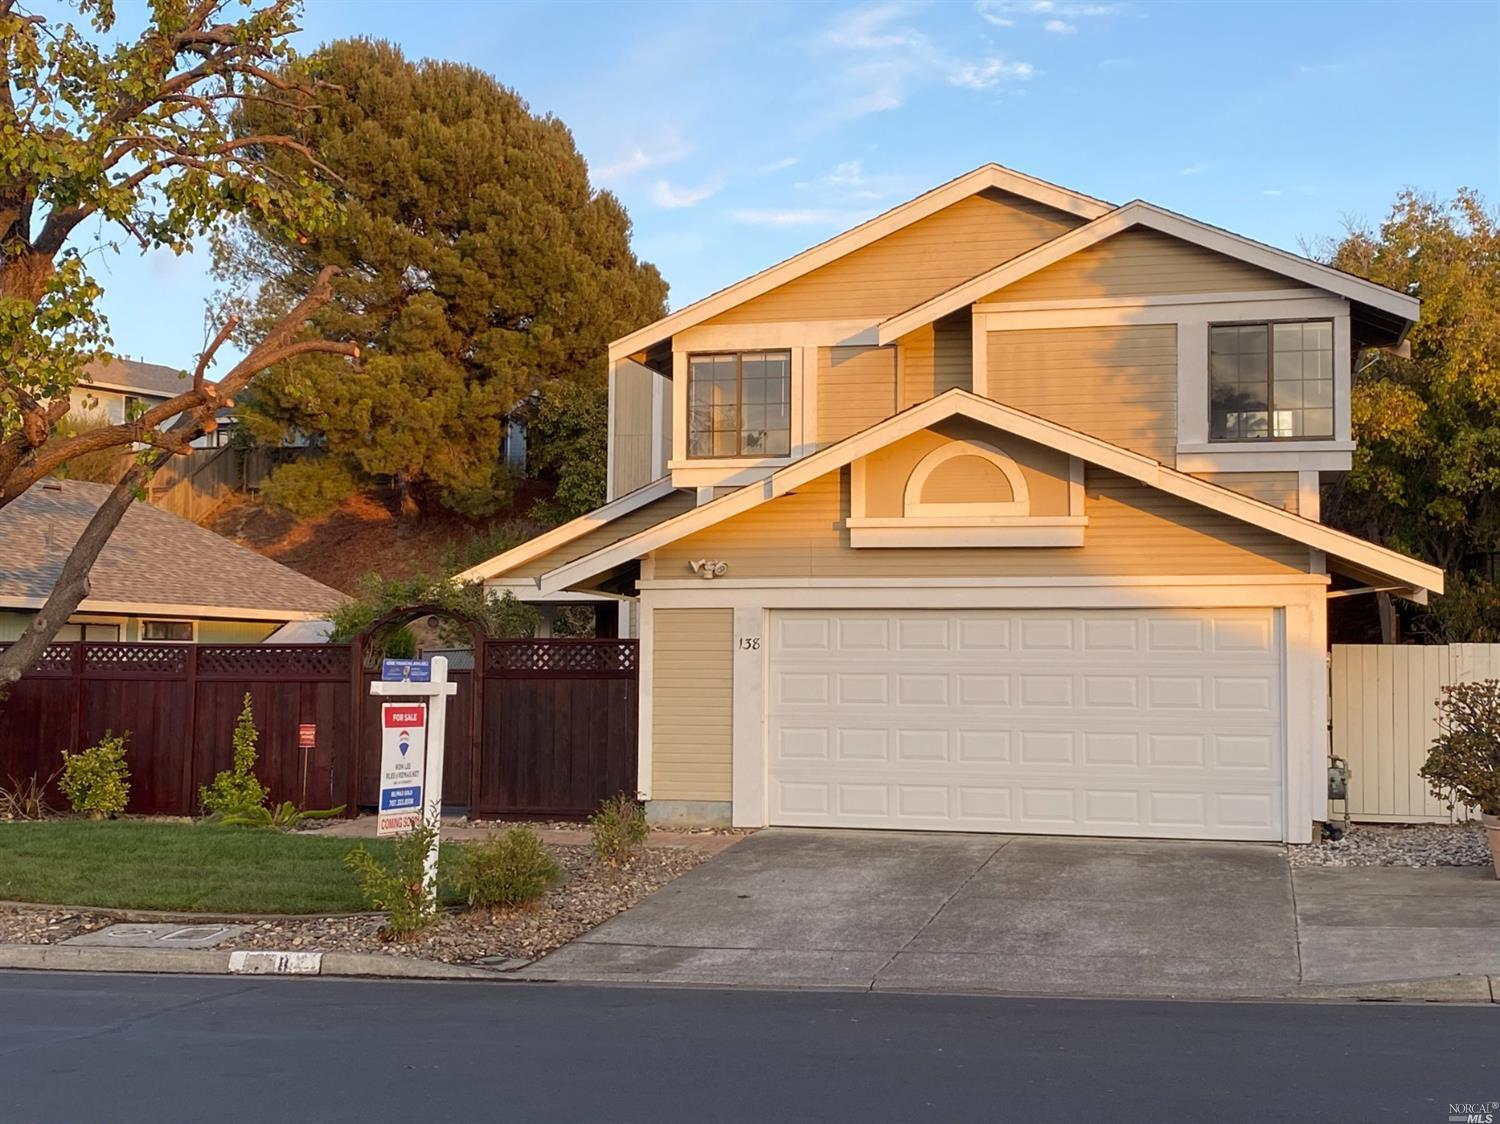 Move-in ready.  Lovely 4 bedroom home on a large lot. Located on a quite street with easy access to